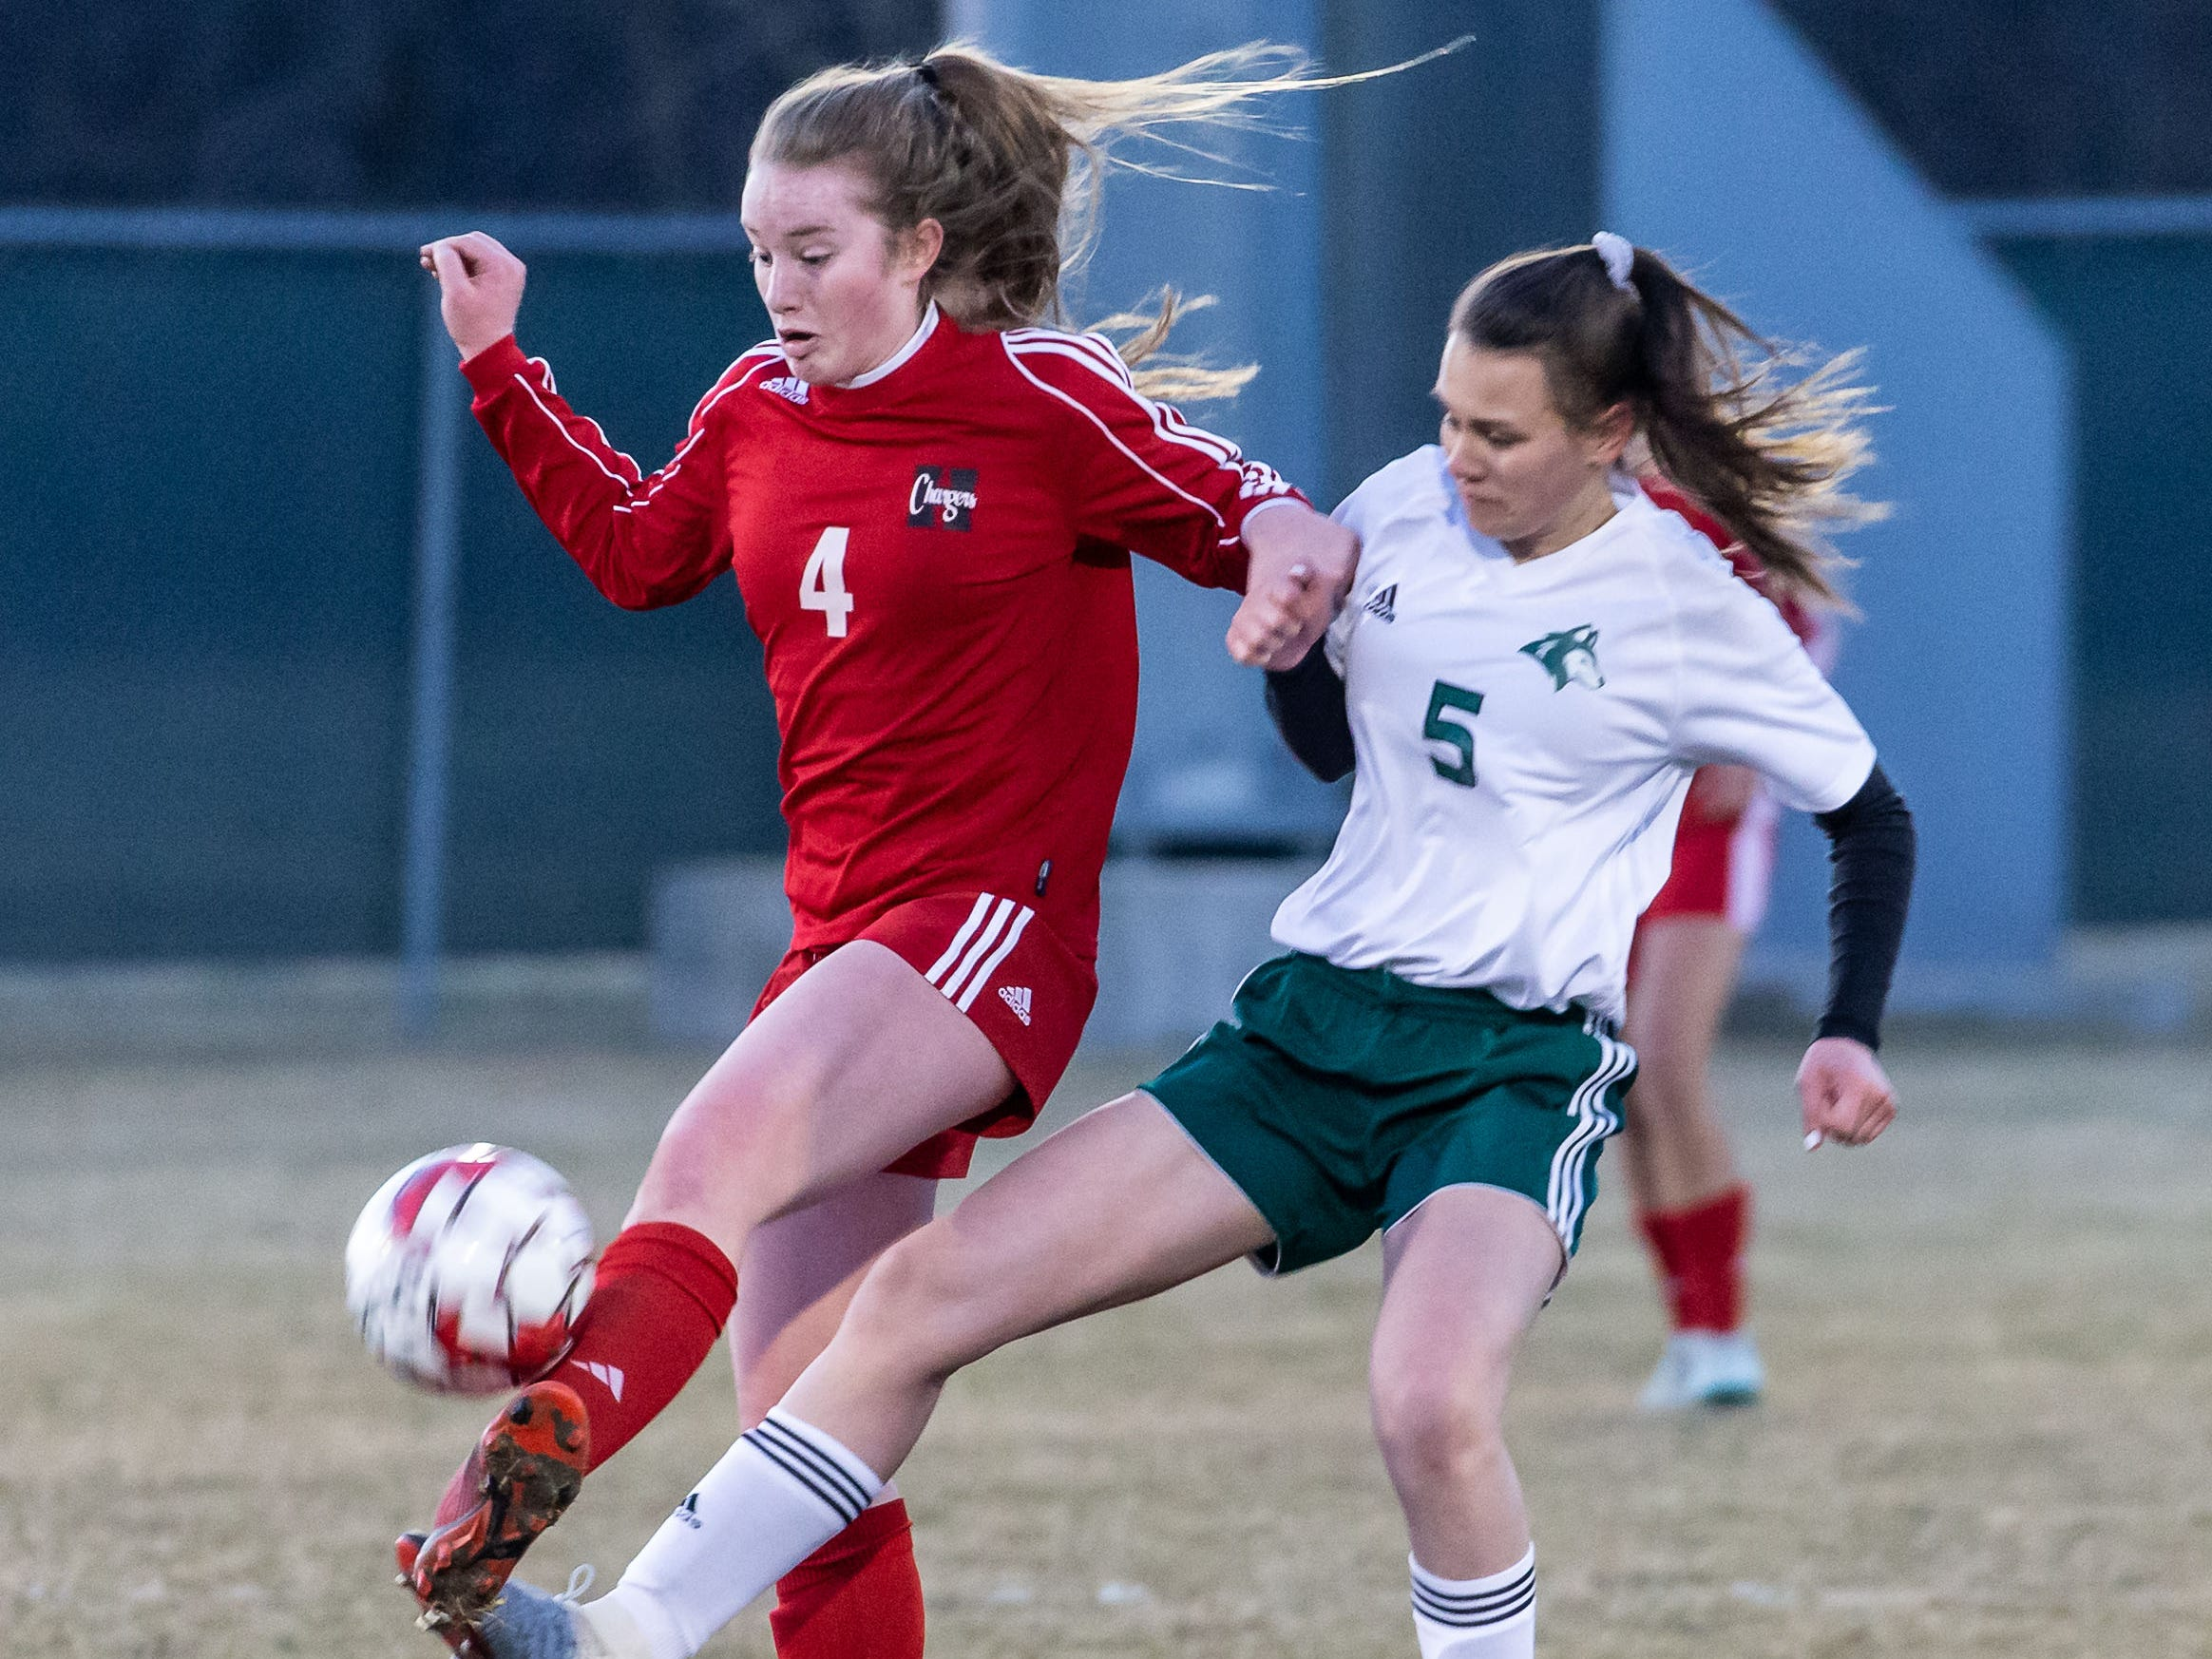 Hamilton's Maddie Wrobleski (4) battles for possession with West Allis Hale's Abby Marek (5) during the game at Hamilton on Tuesday, April 2, 2019.